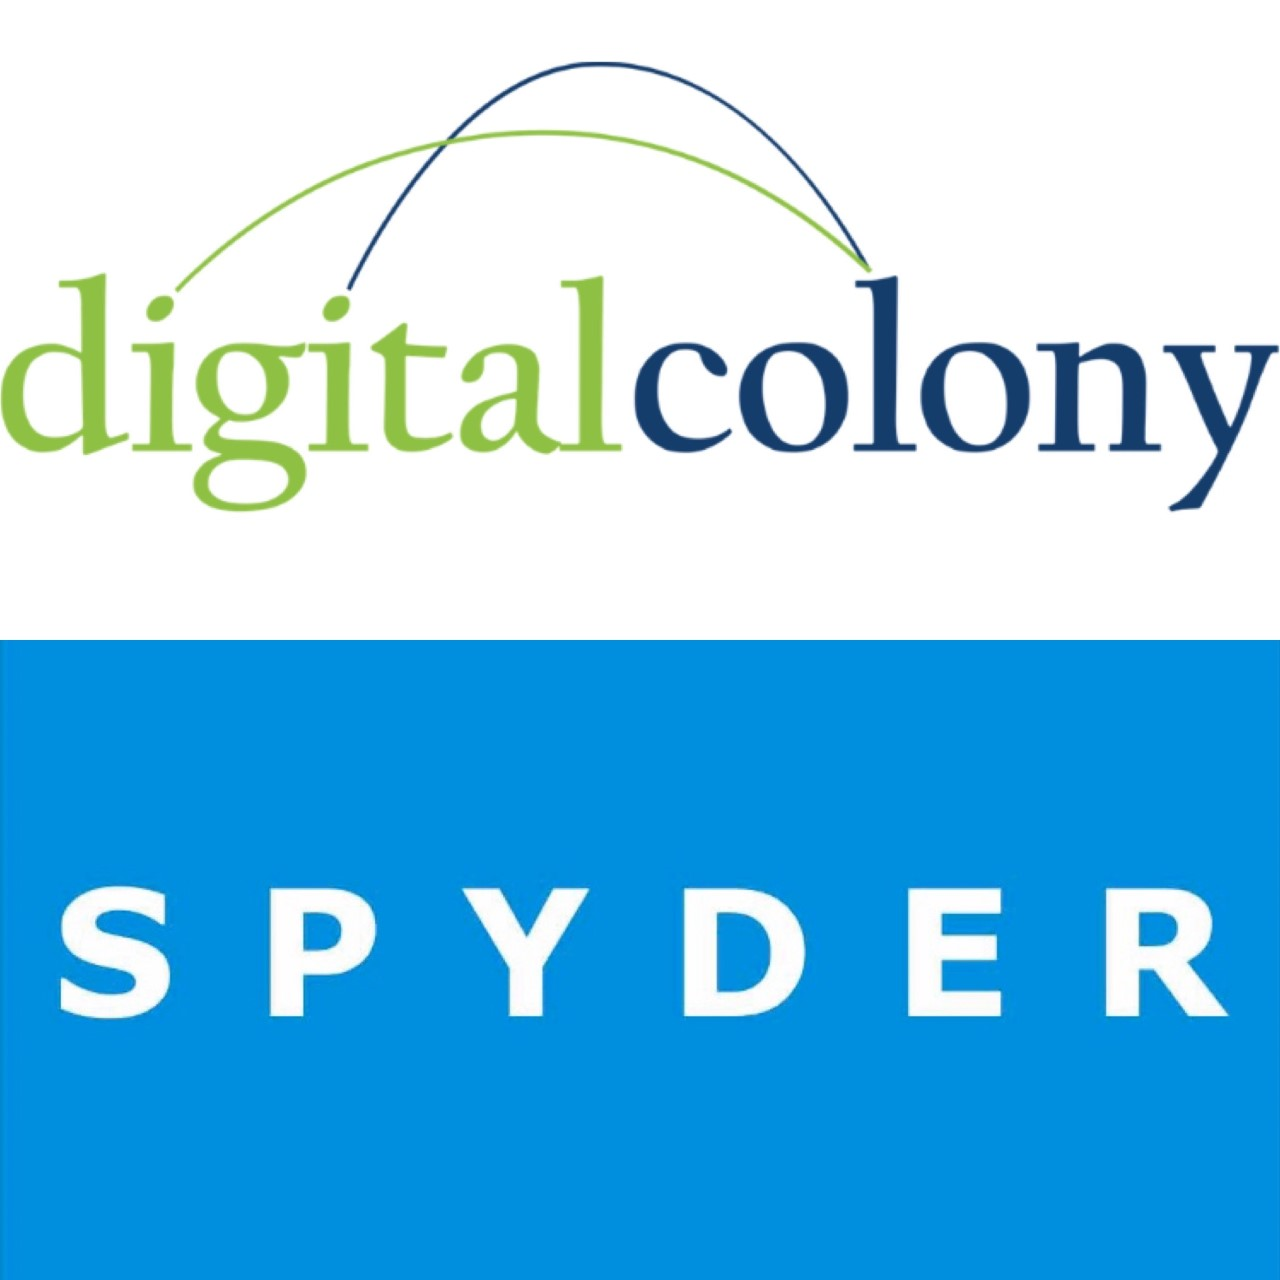 Spyder Facilities acquired by Digital Colony's UK digital infrastructure platform